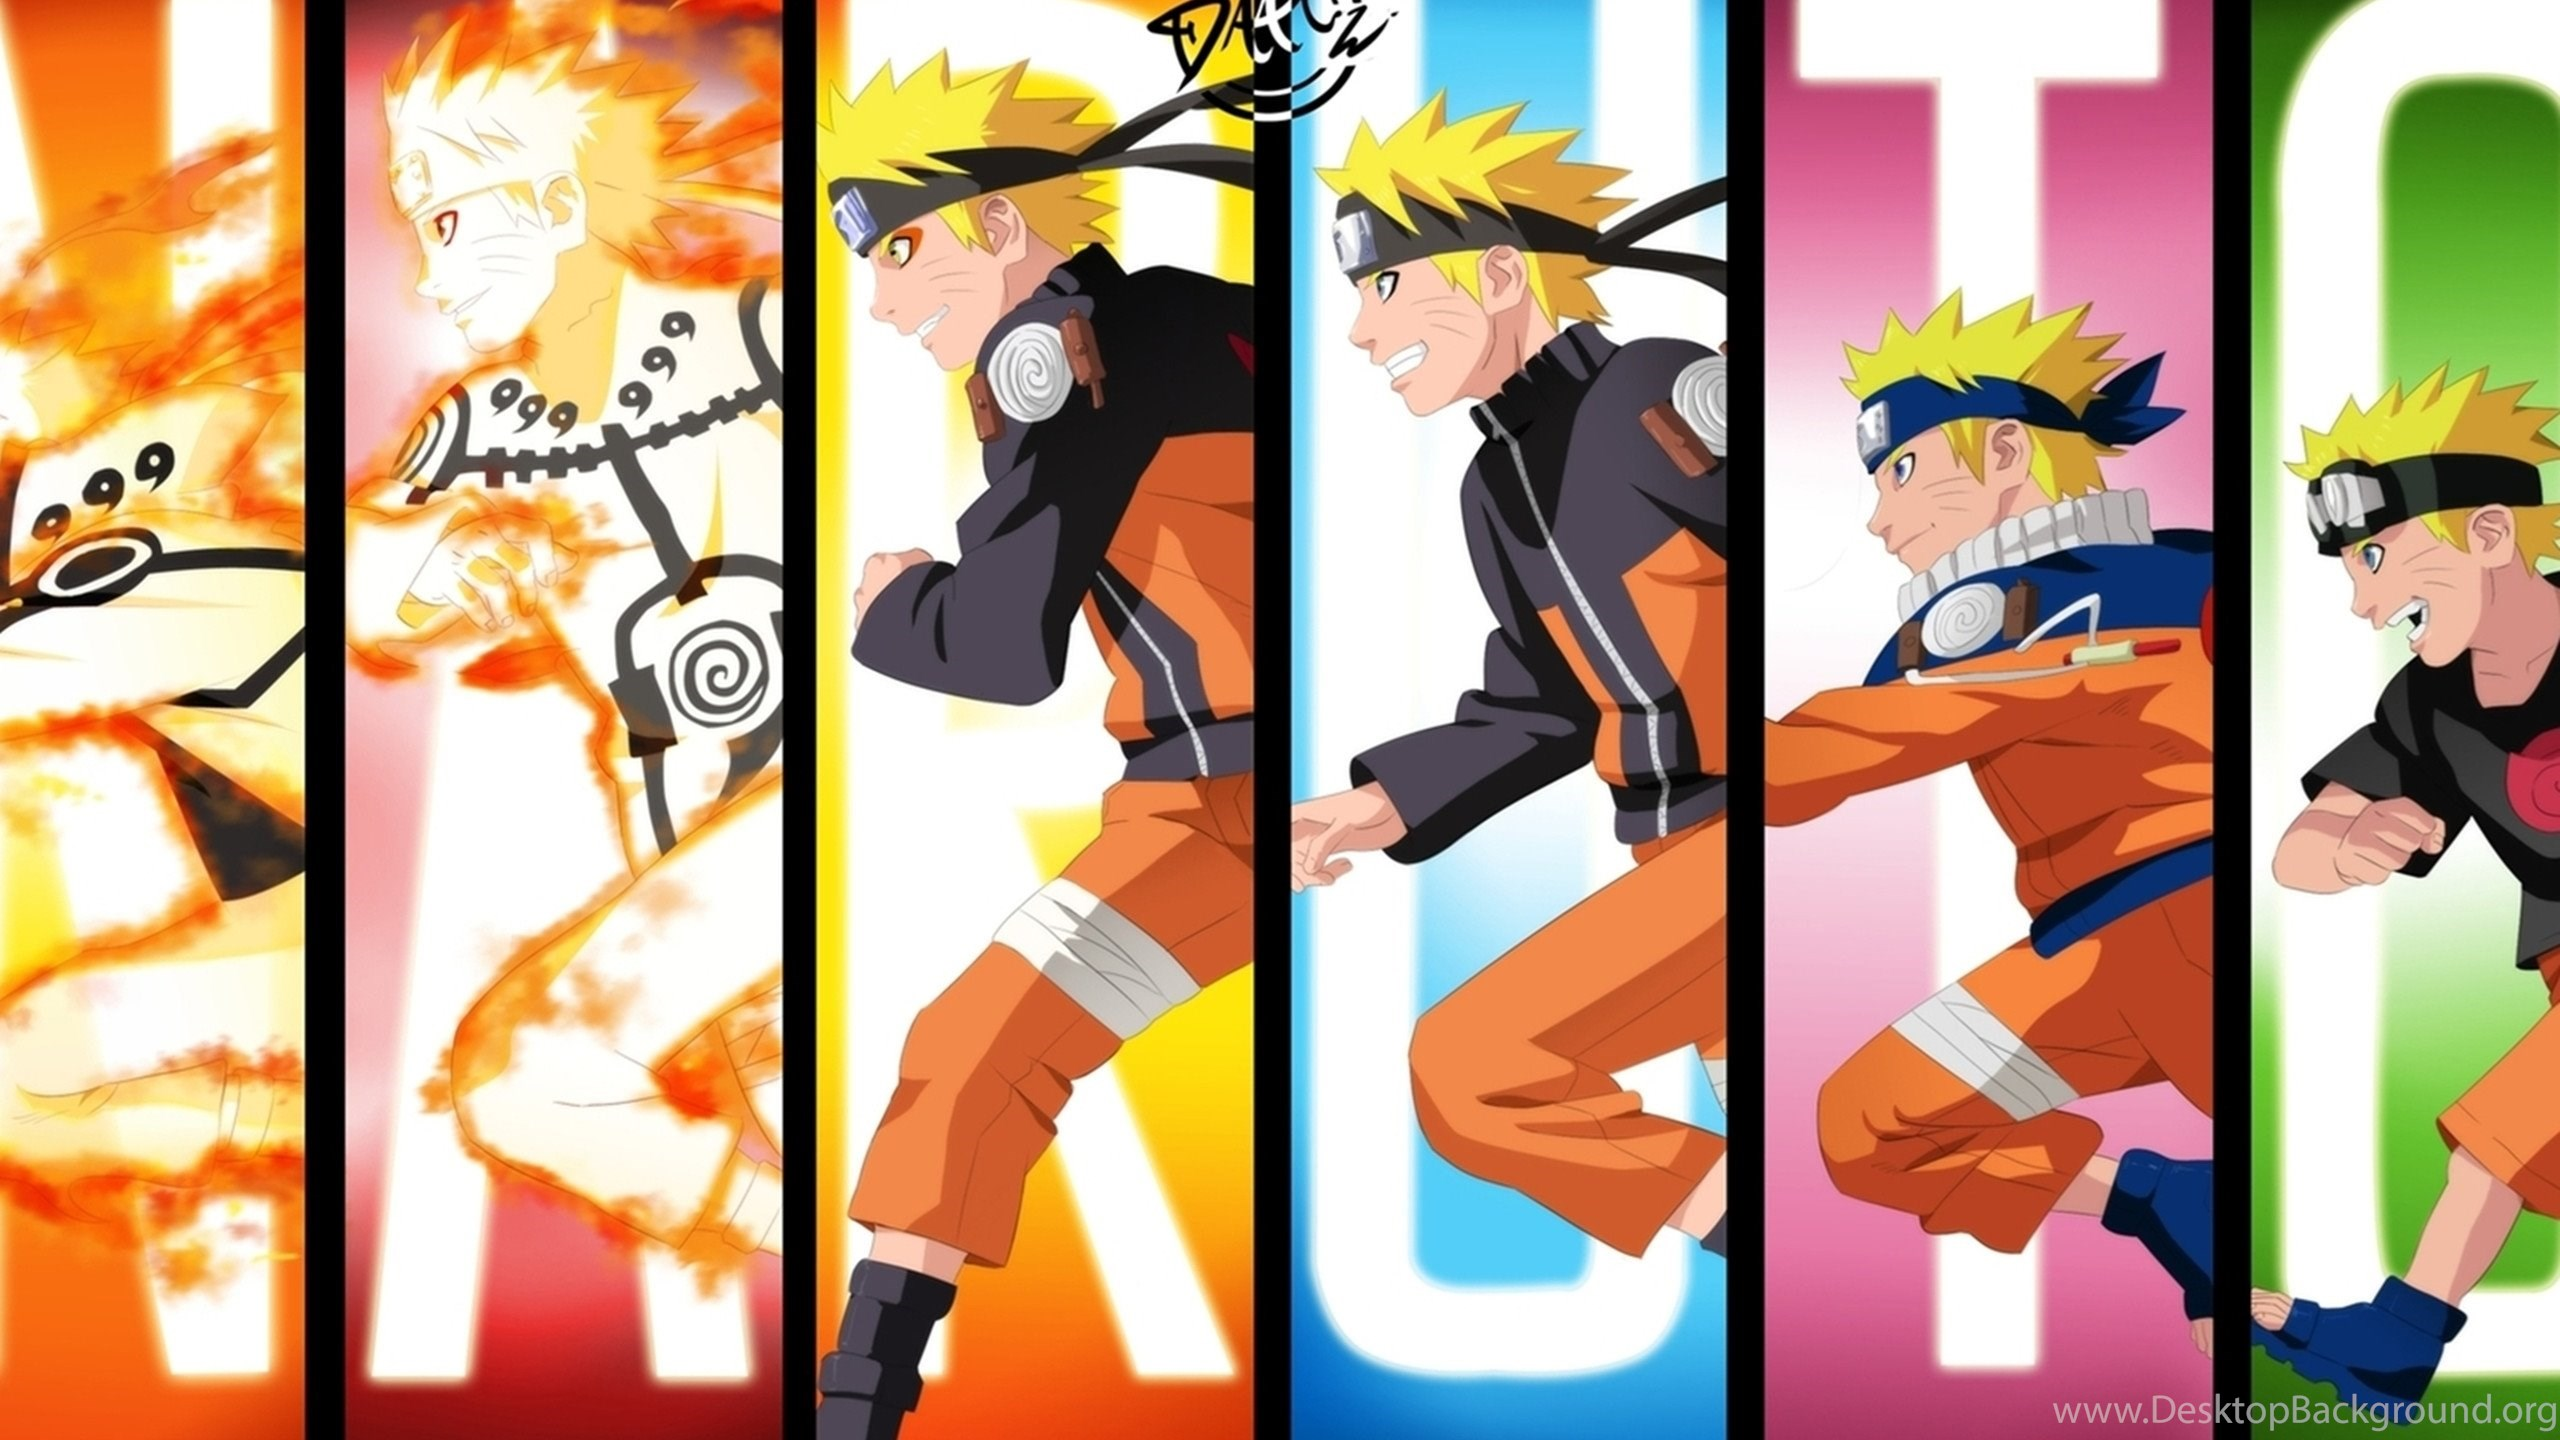 Amazing Wallpaper Naruto Tablet - 736757_naruto-wallpaper-backgrounds-f3-hd-wallpapers_2560x1600_h  You Should Have.jpg